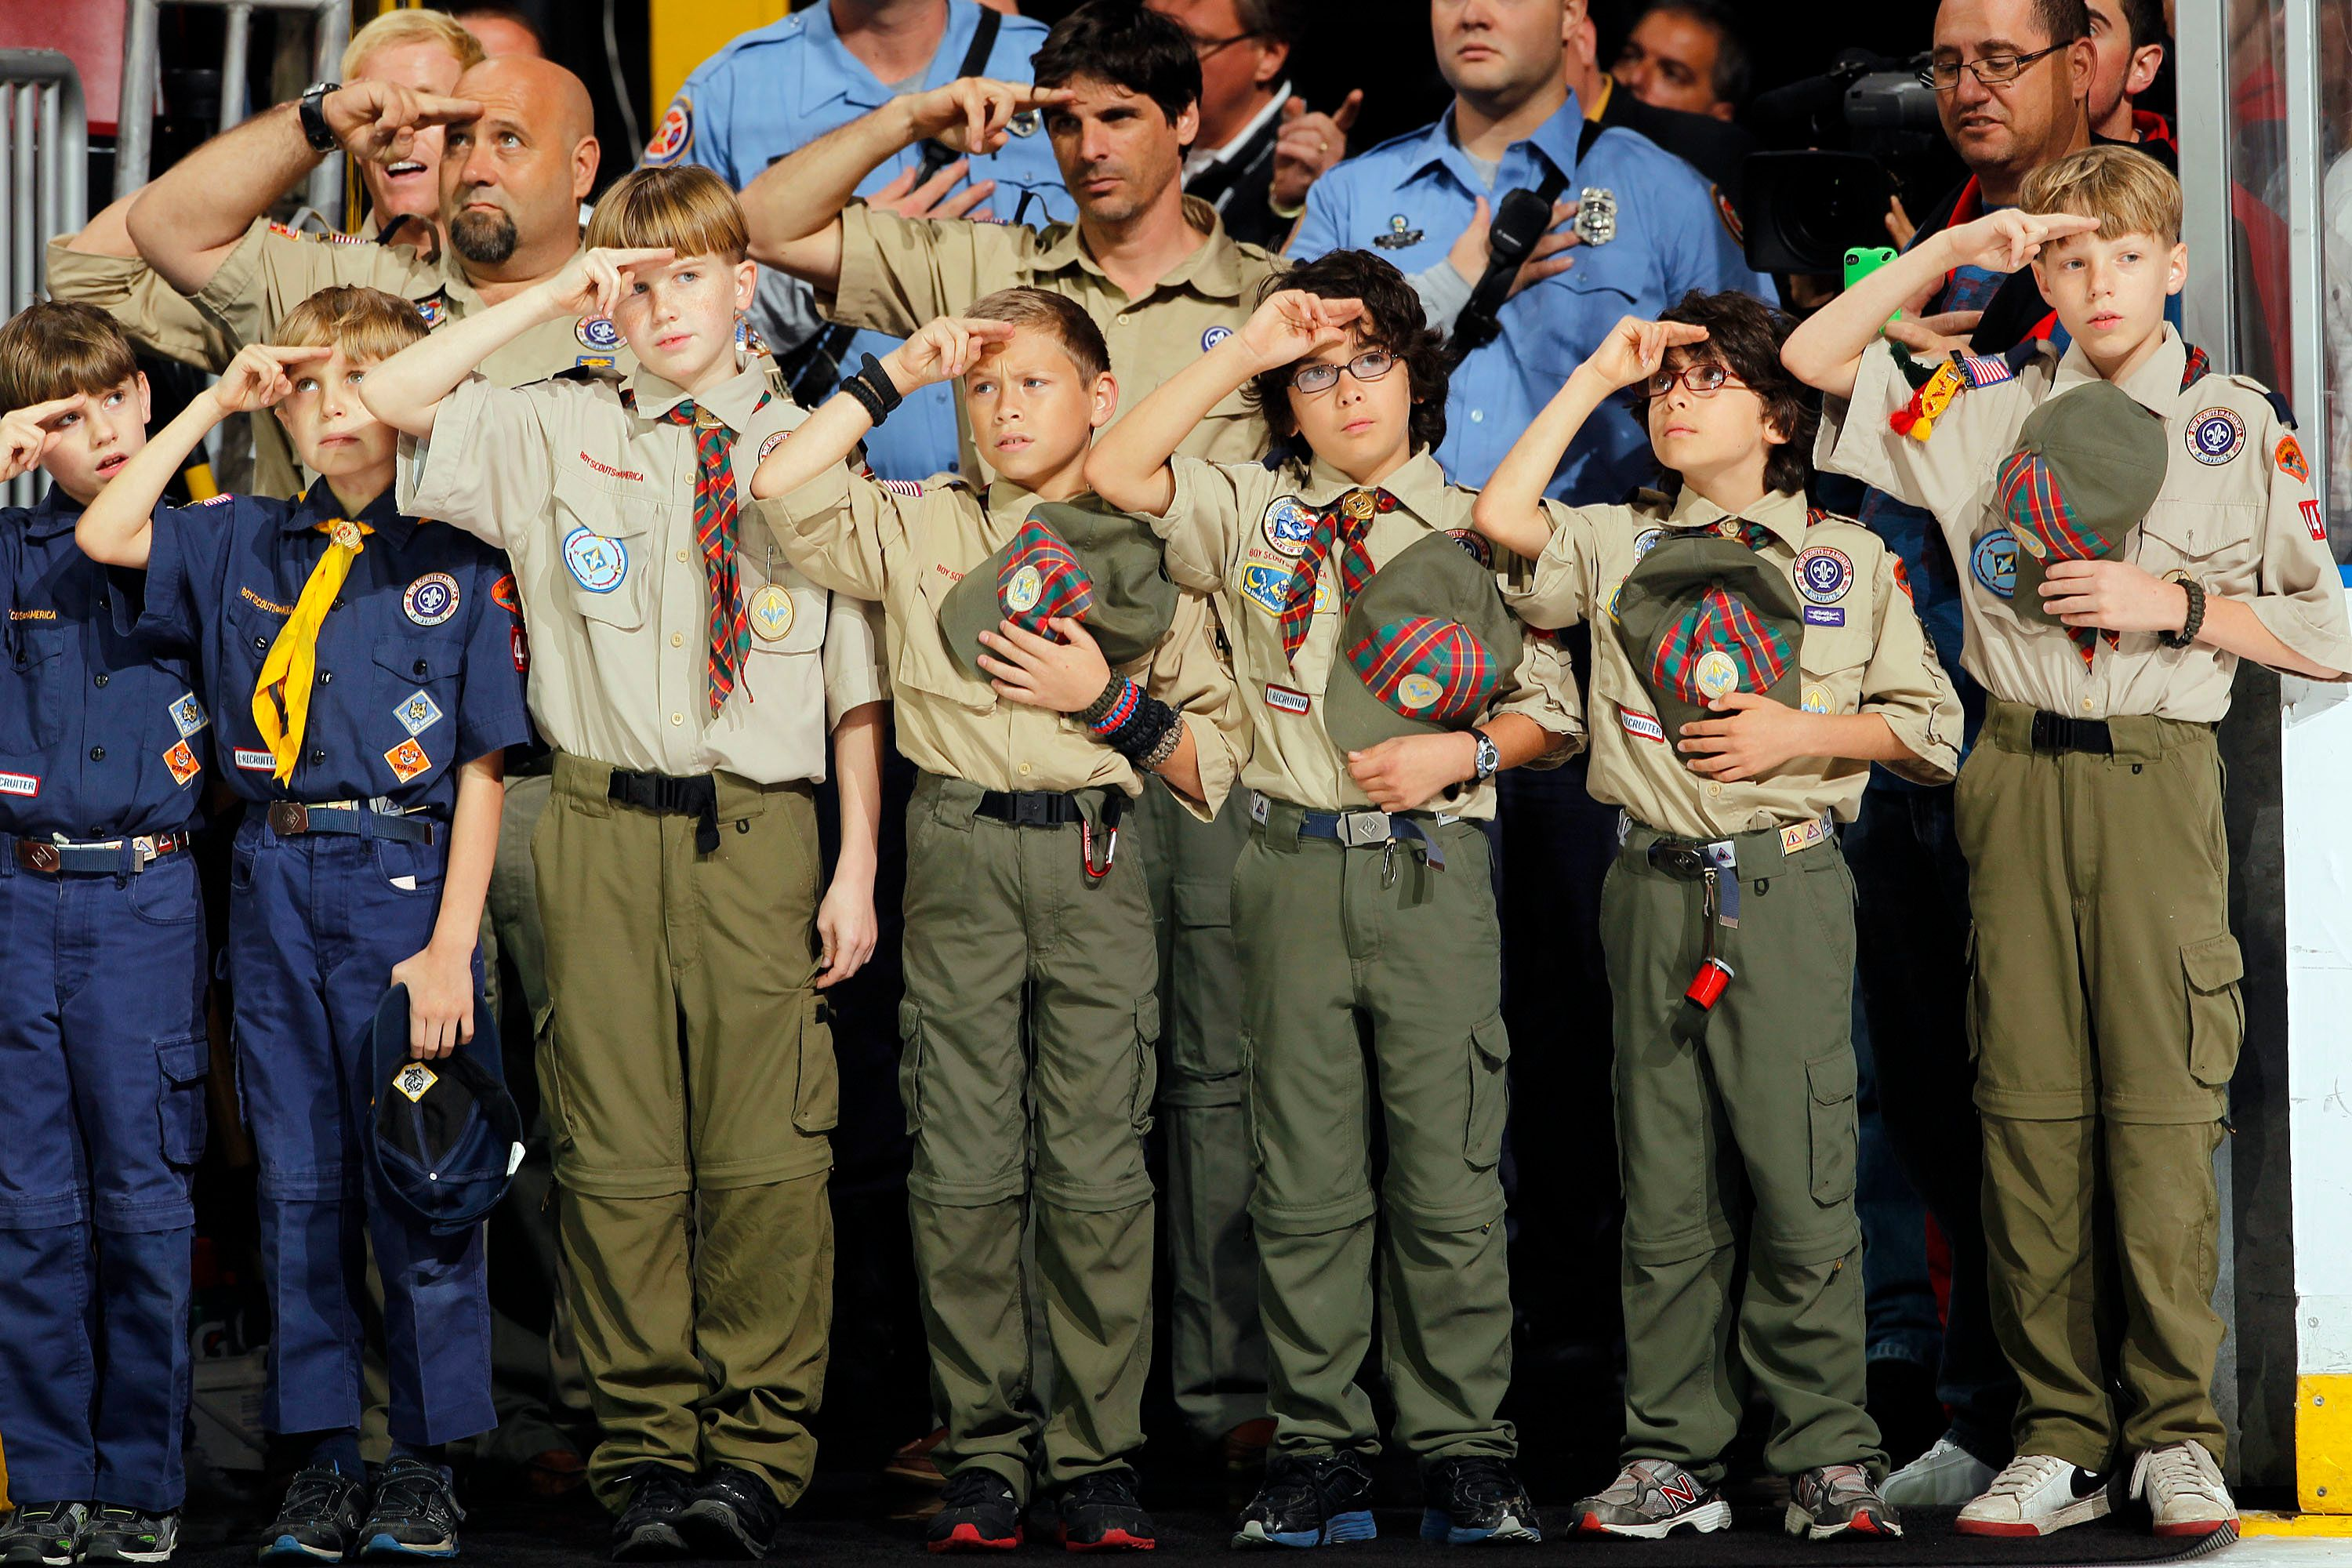 Boy Scouts of America announced Wednesday that the organization would be allowing girls to join its Cub Scout program and dev